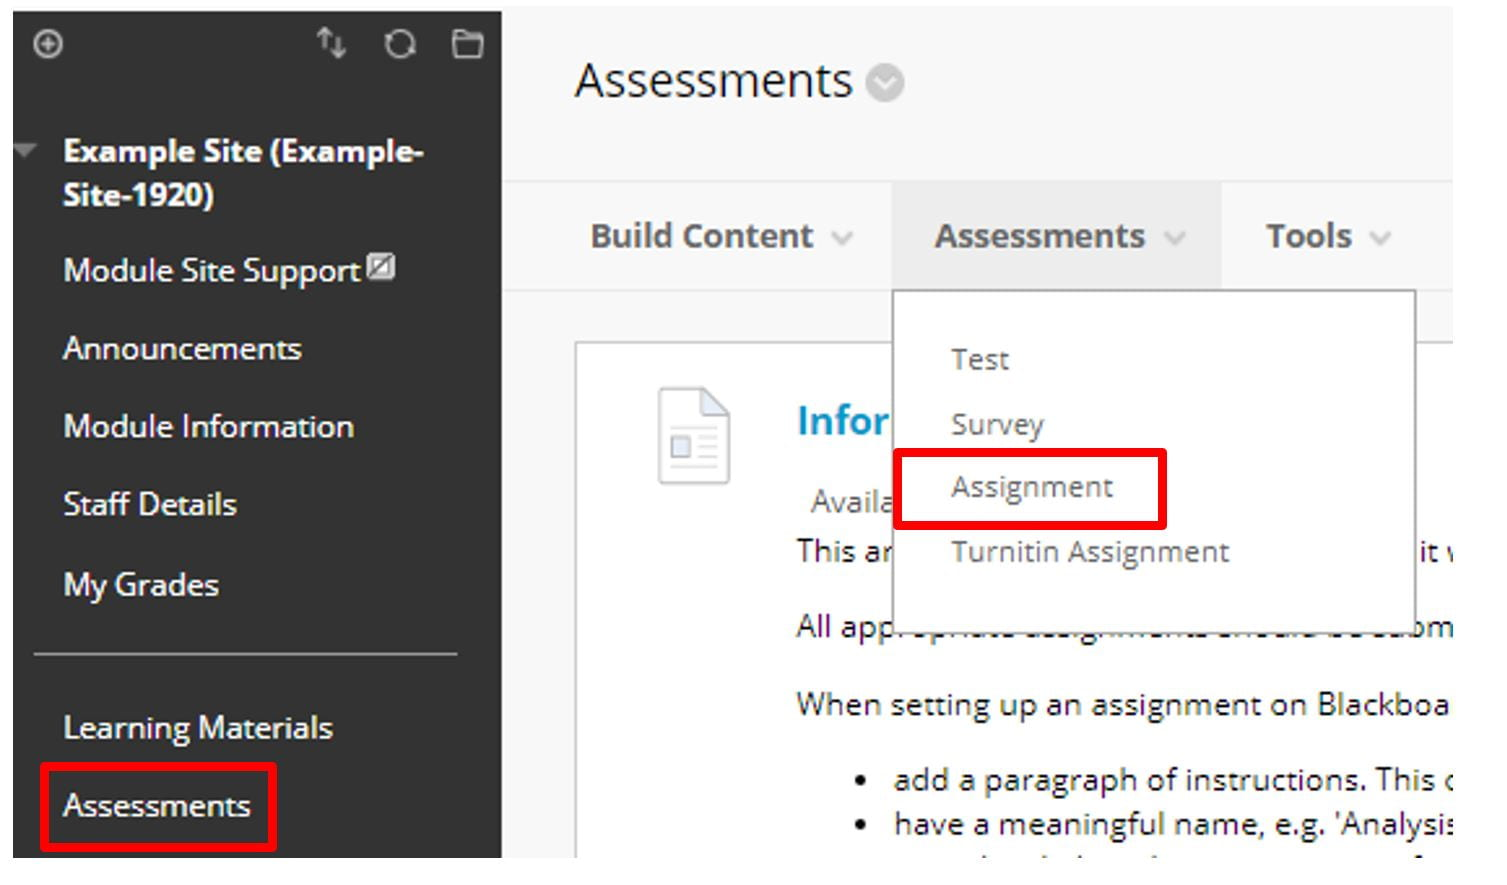 A screenshot of the Blackboard Assessments page on a Module Site. The Assessments tab is expanded and a red box highlights the Assignment option in the drop down list.